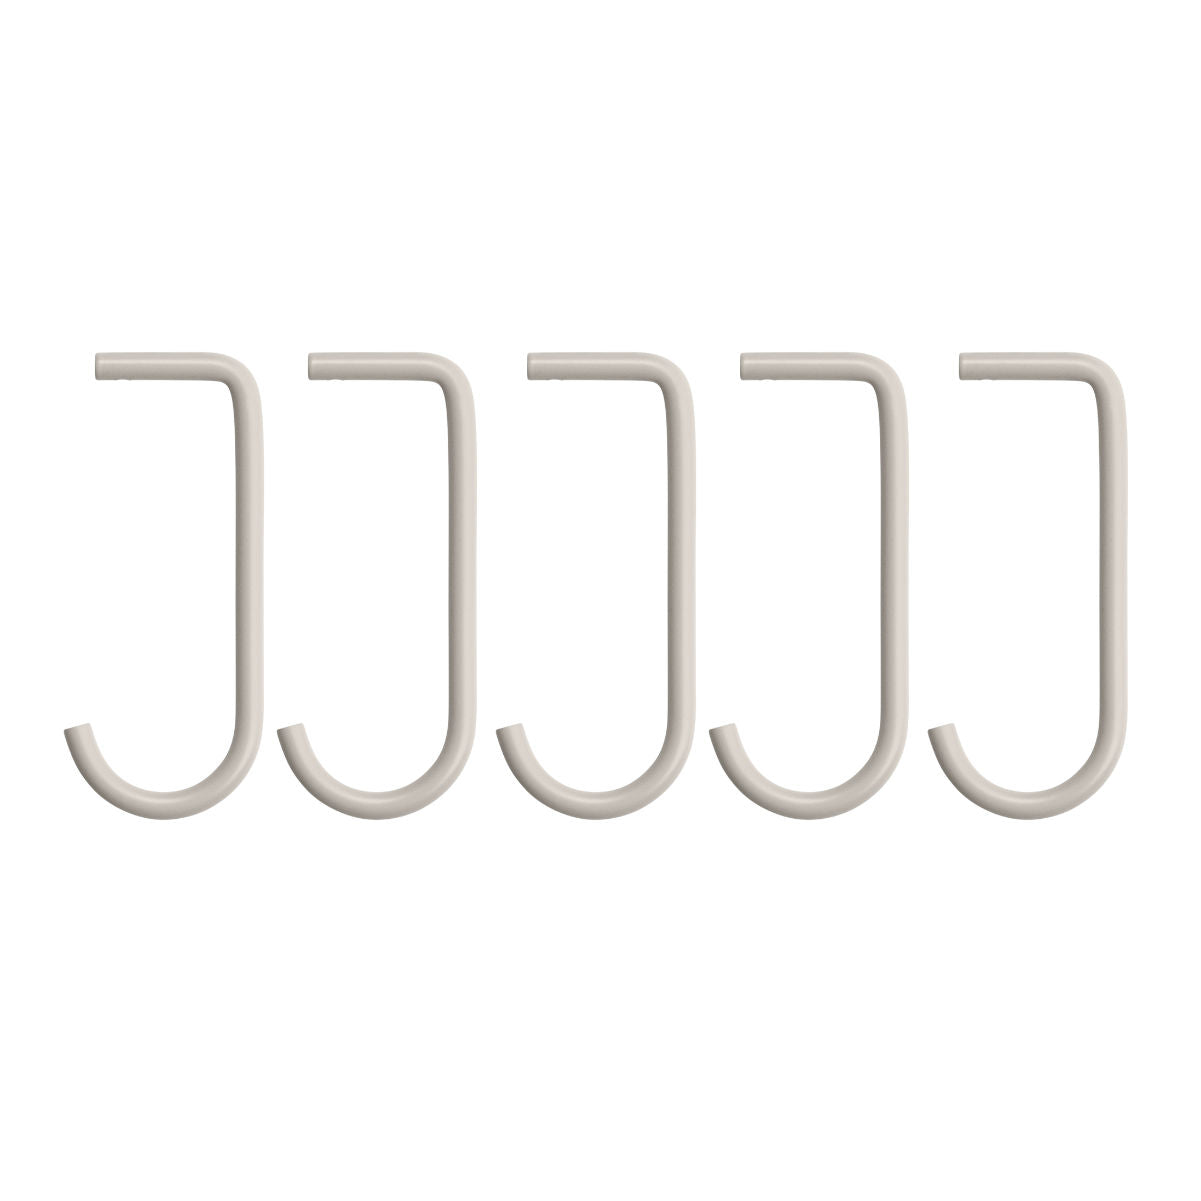 String® Shelving System Metal Hook J, 5-pack